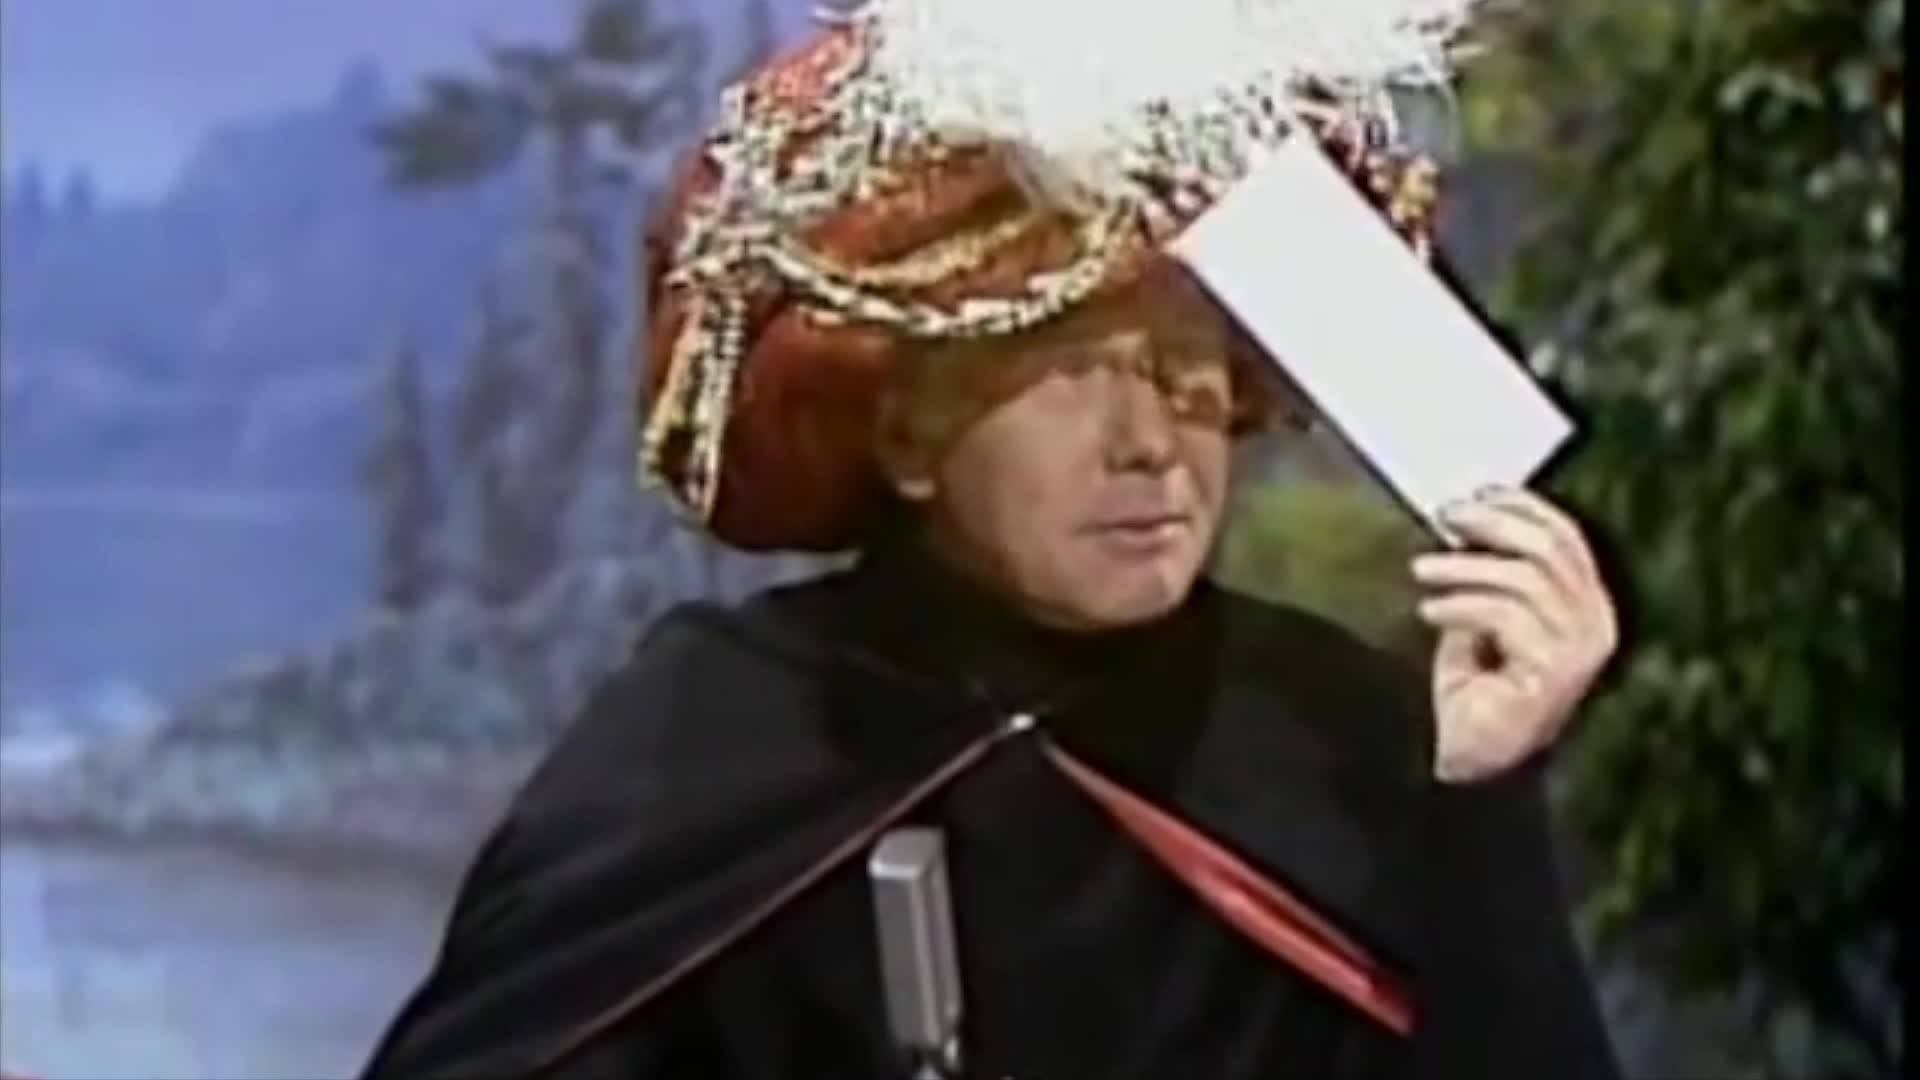 Carnac the Magnificent GIFs